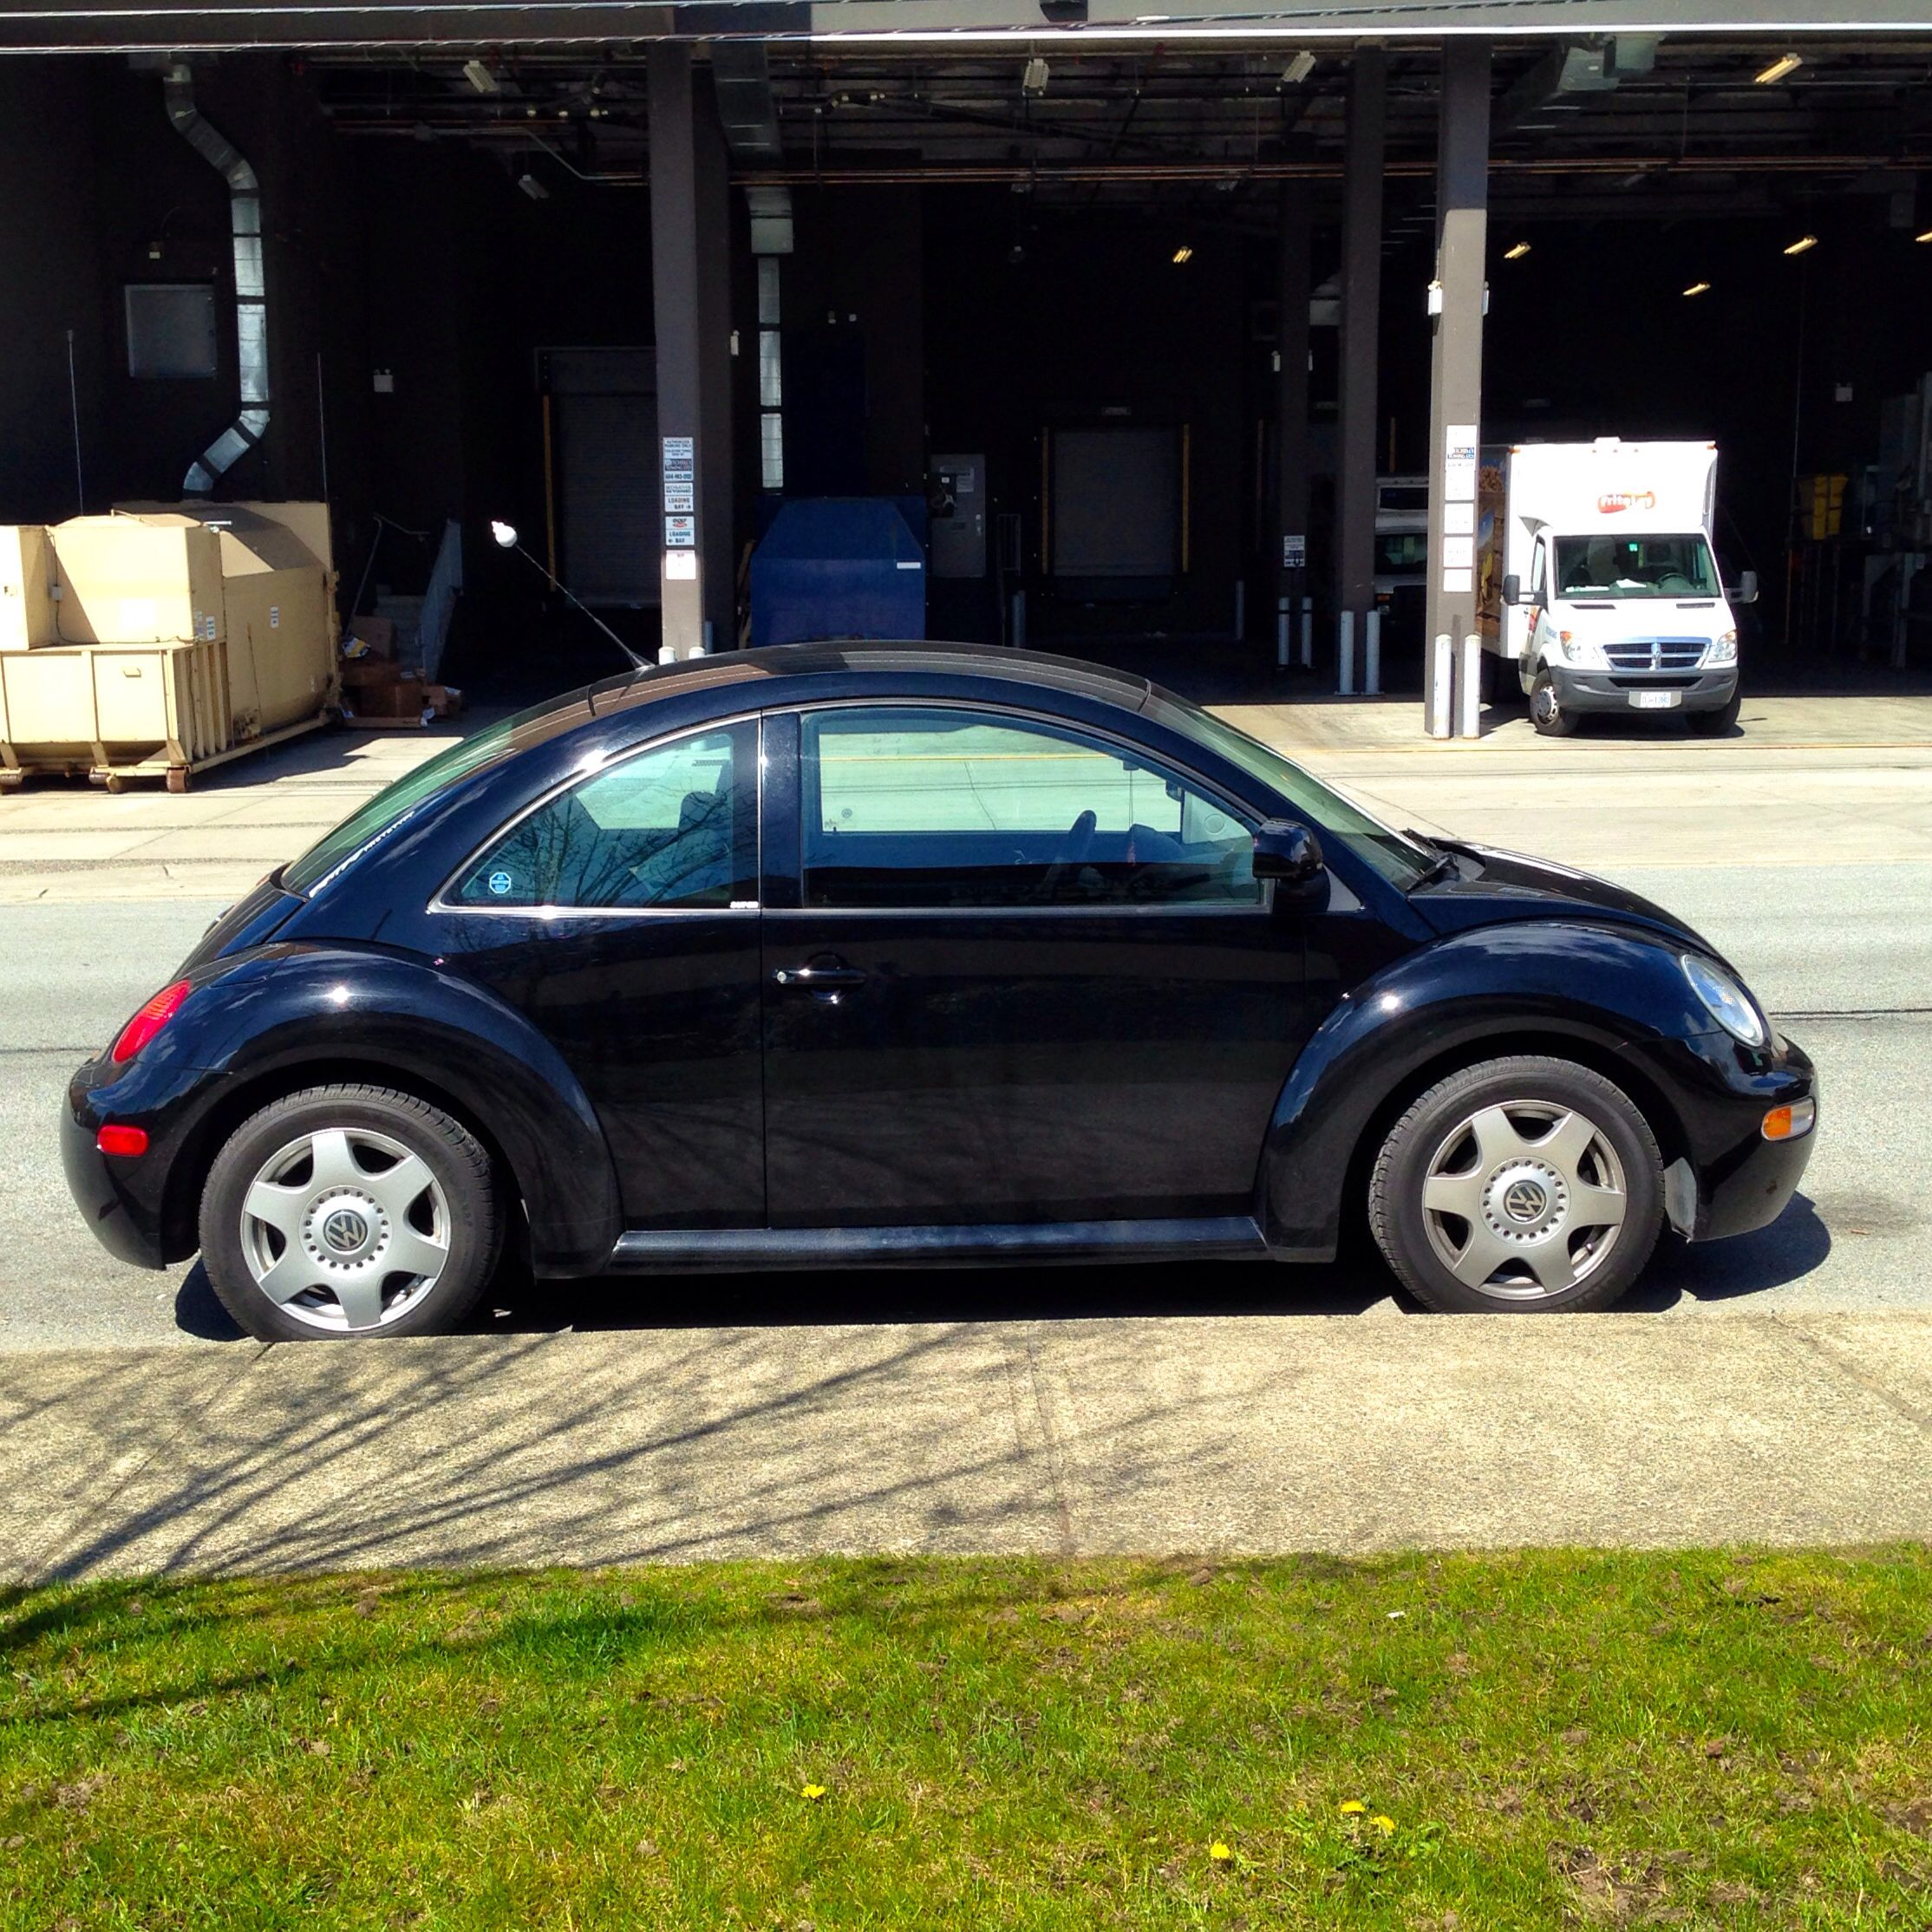 Punchbuggy Black Vw Beetle Spotto In N Vancouver Punchbuggie